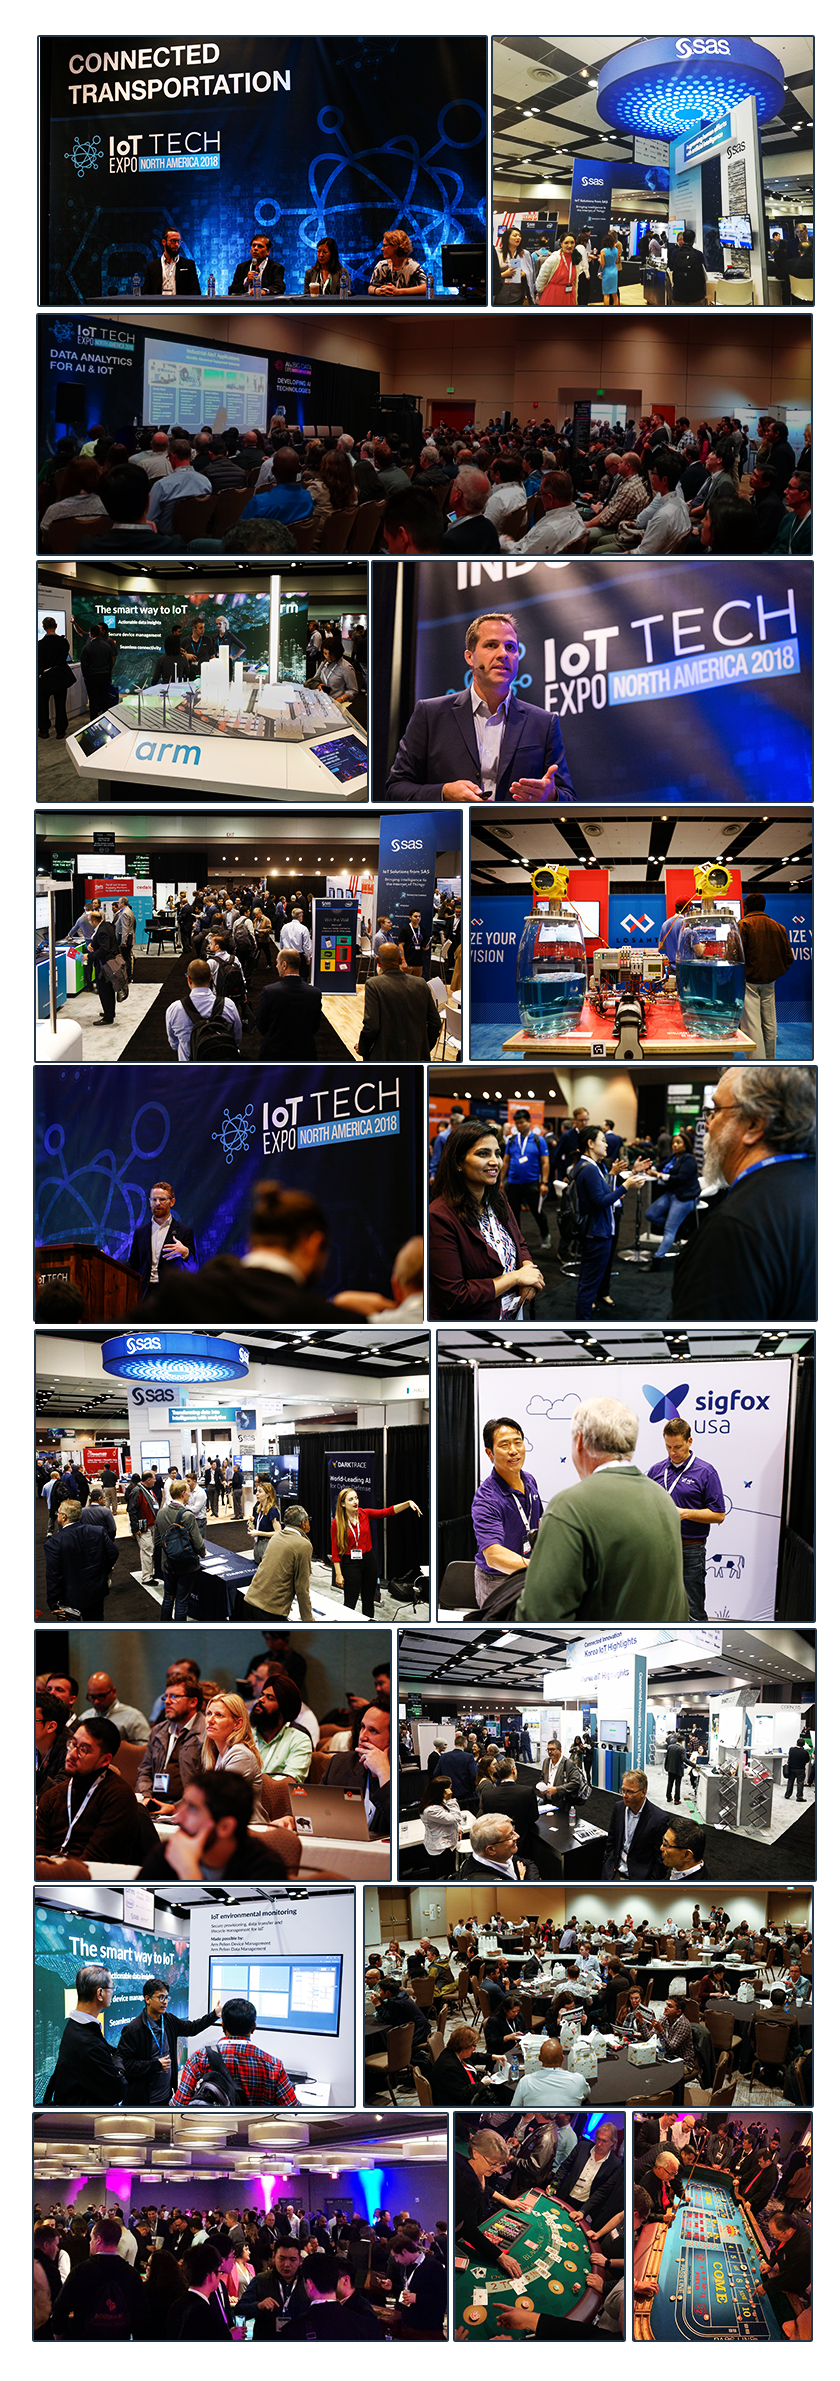 - event photos4 - IoT Tech Expo North America 2018: Highlights from the Silicon Valley event